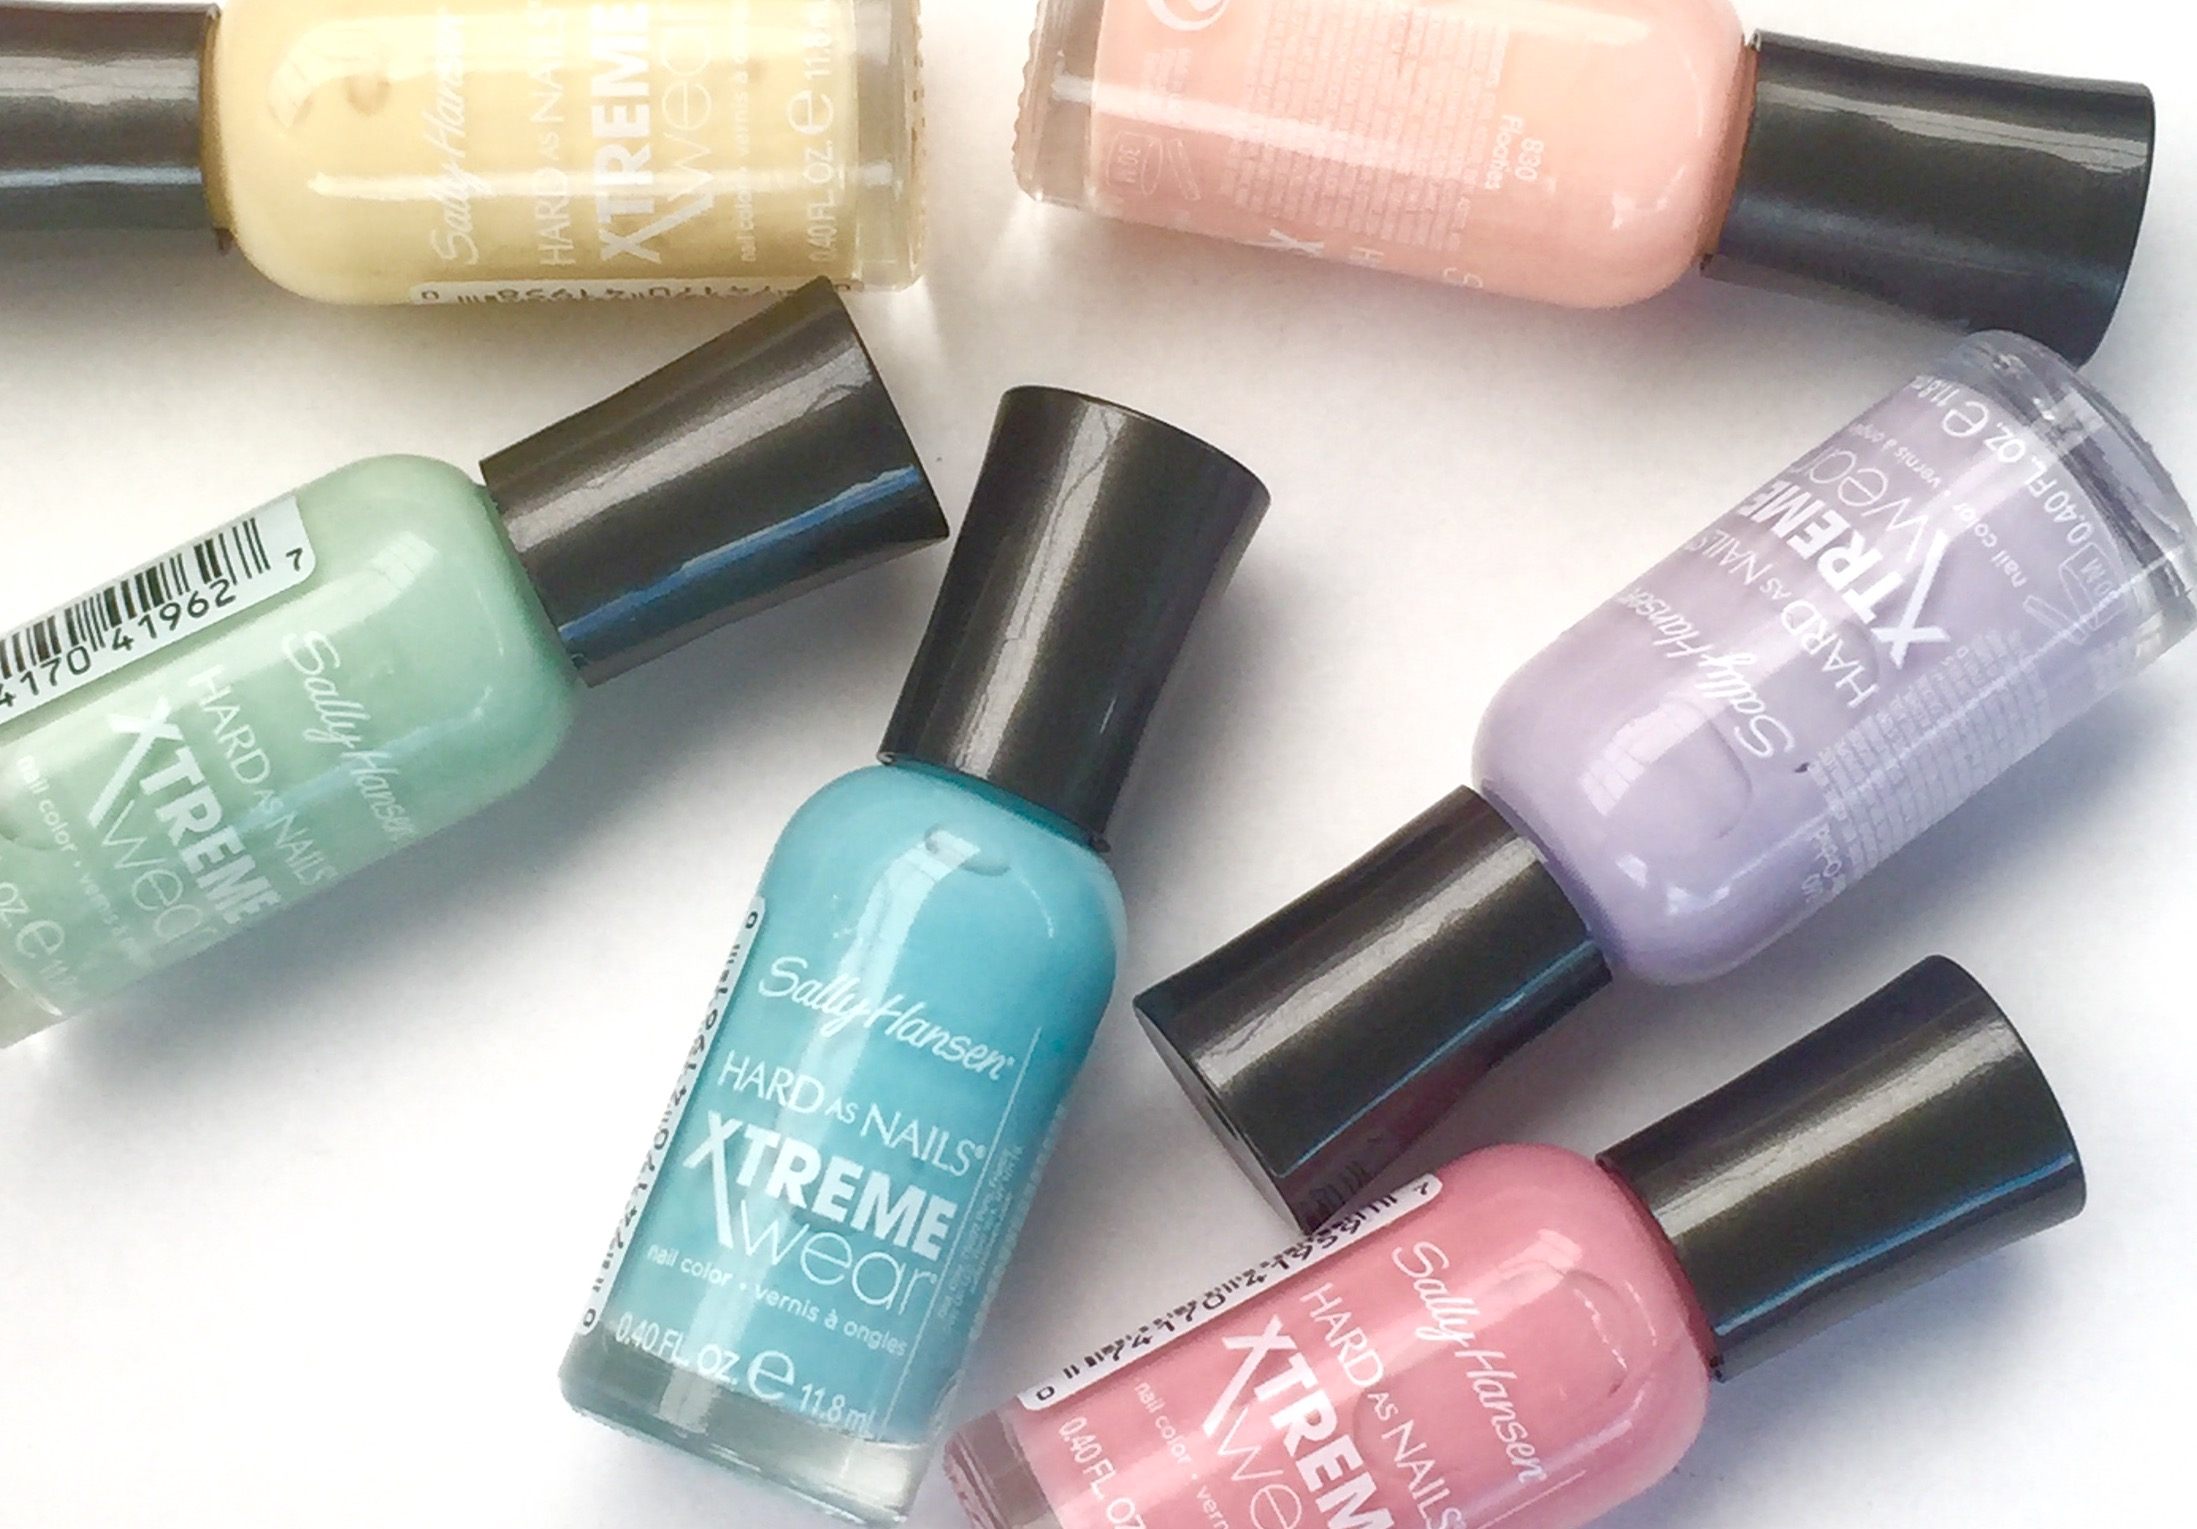 NaiMania – Sally Hansen Hard as Nails Xtreme Wear Summer Pastels